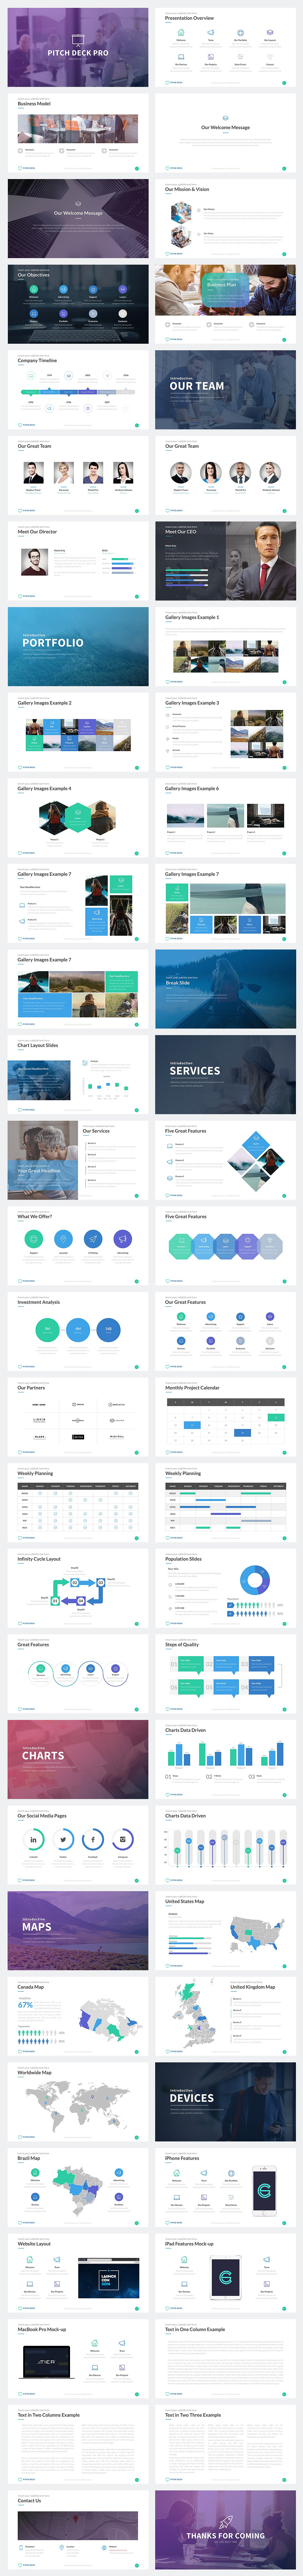 Pitch Deck Pro Minimal Templates - PowerPoint Templates - Keynote Themes - Google Slides